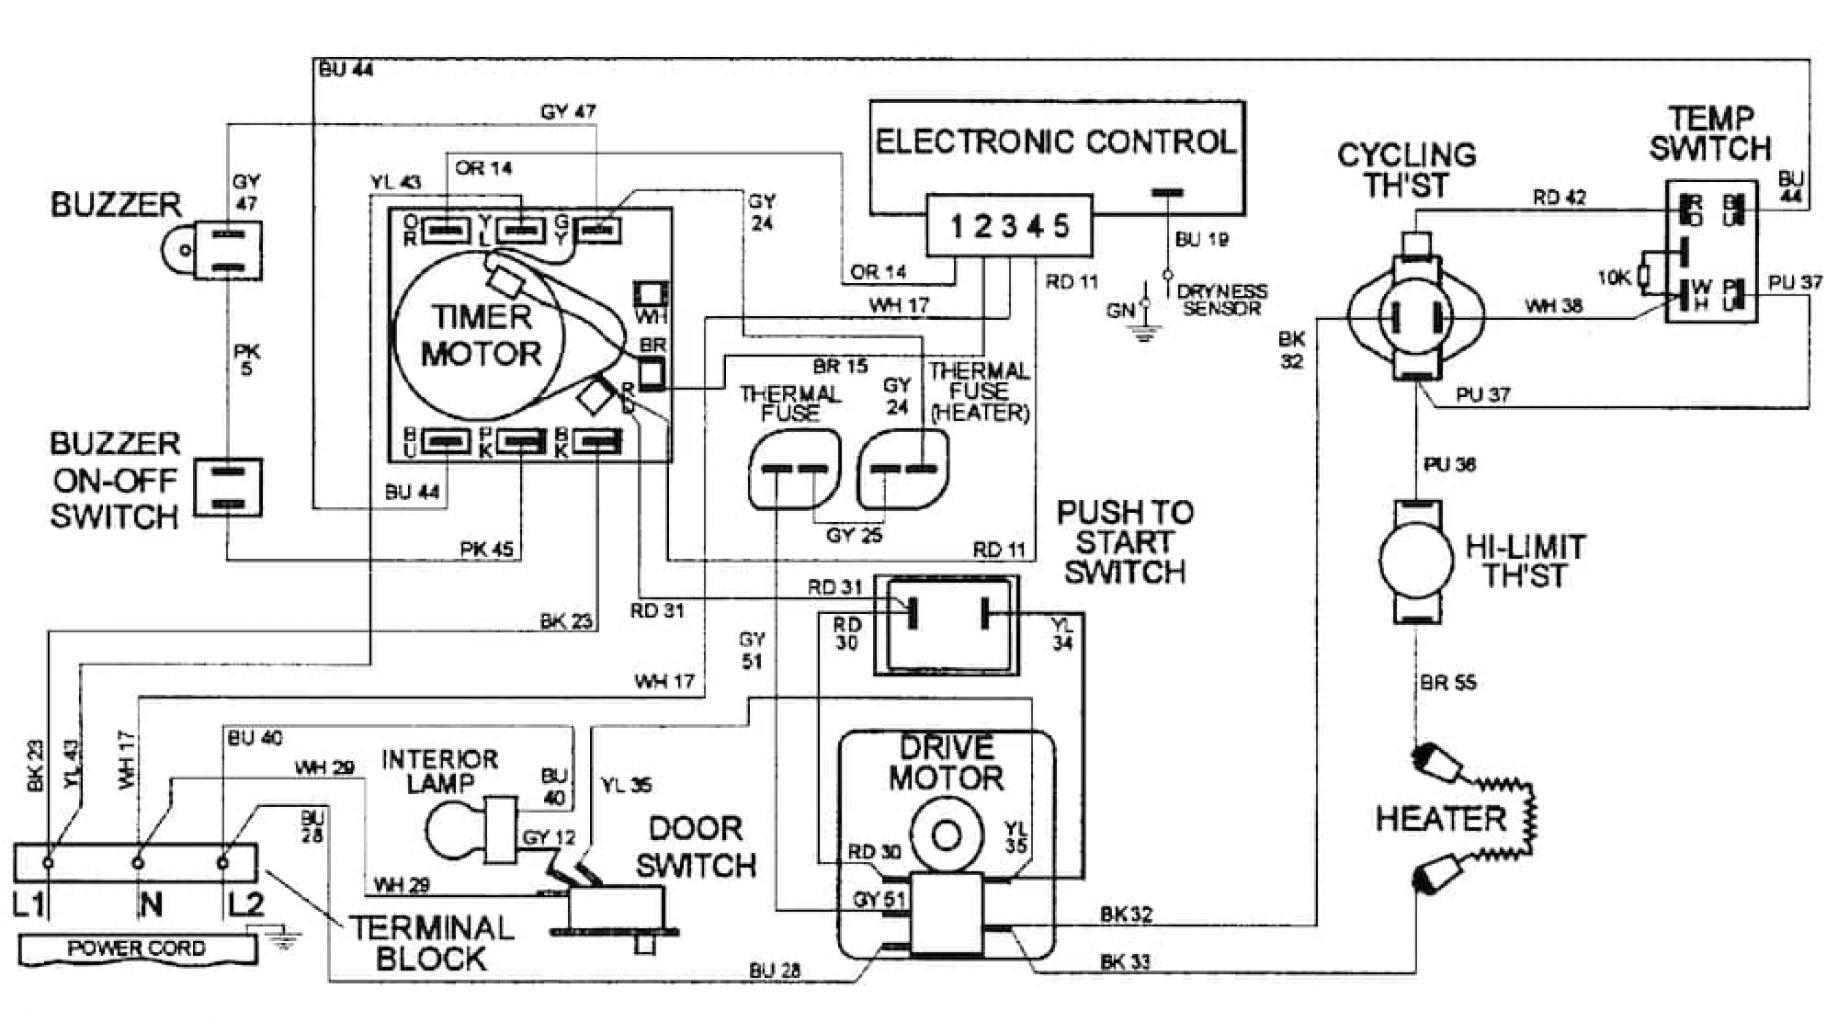 dryer electrical diagrams electrical schematic wiring diagram Whirlpool Dryer Schematic Wiring Diagram